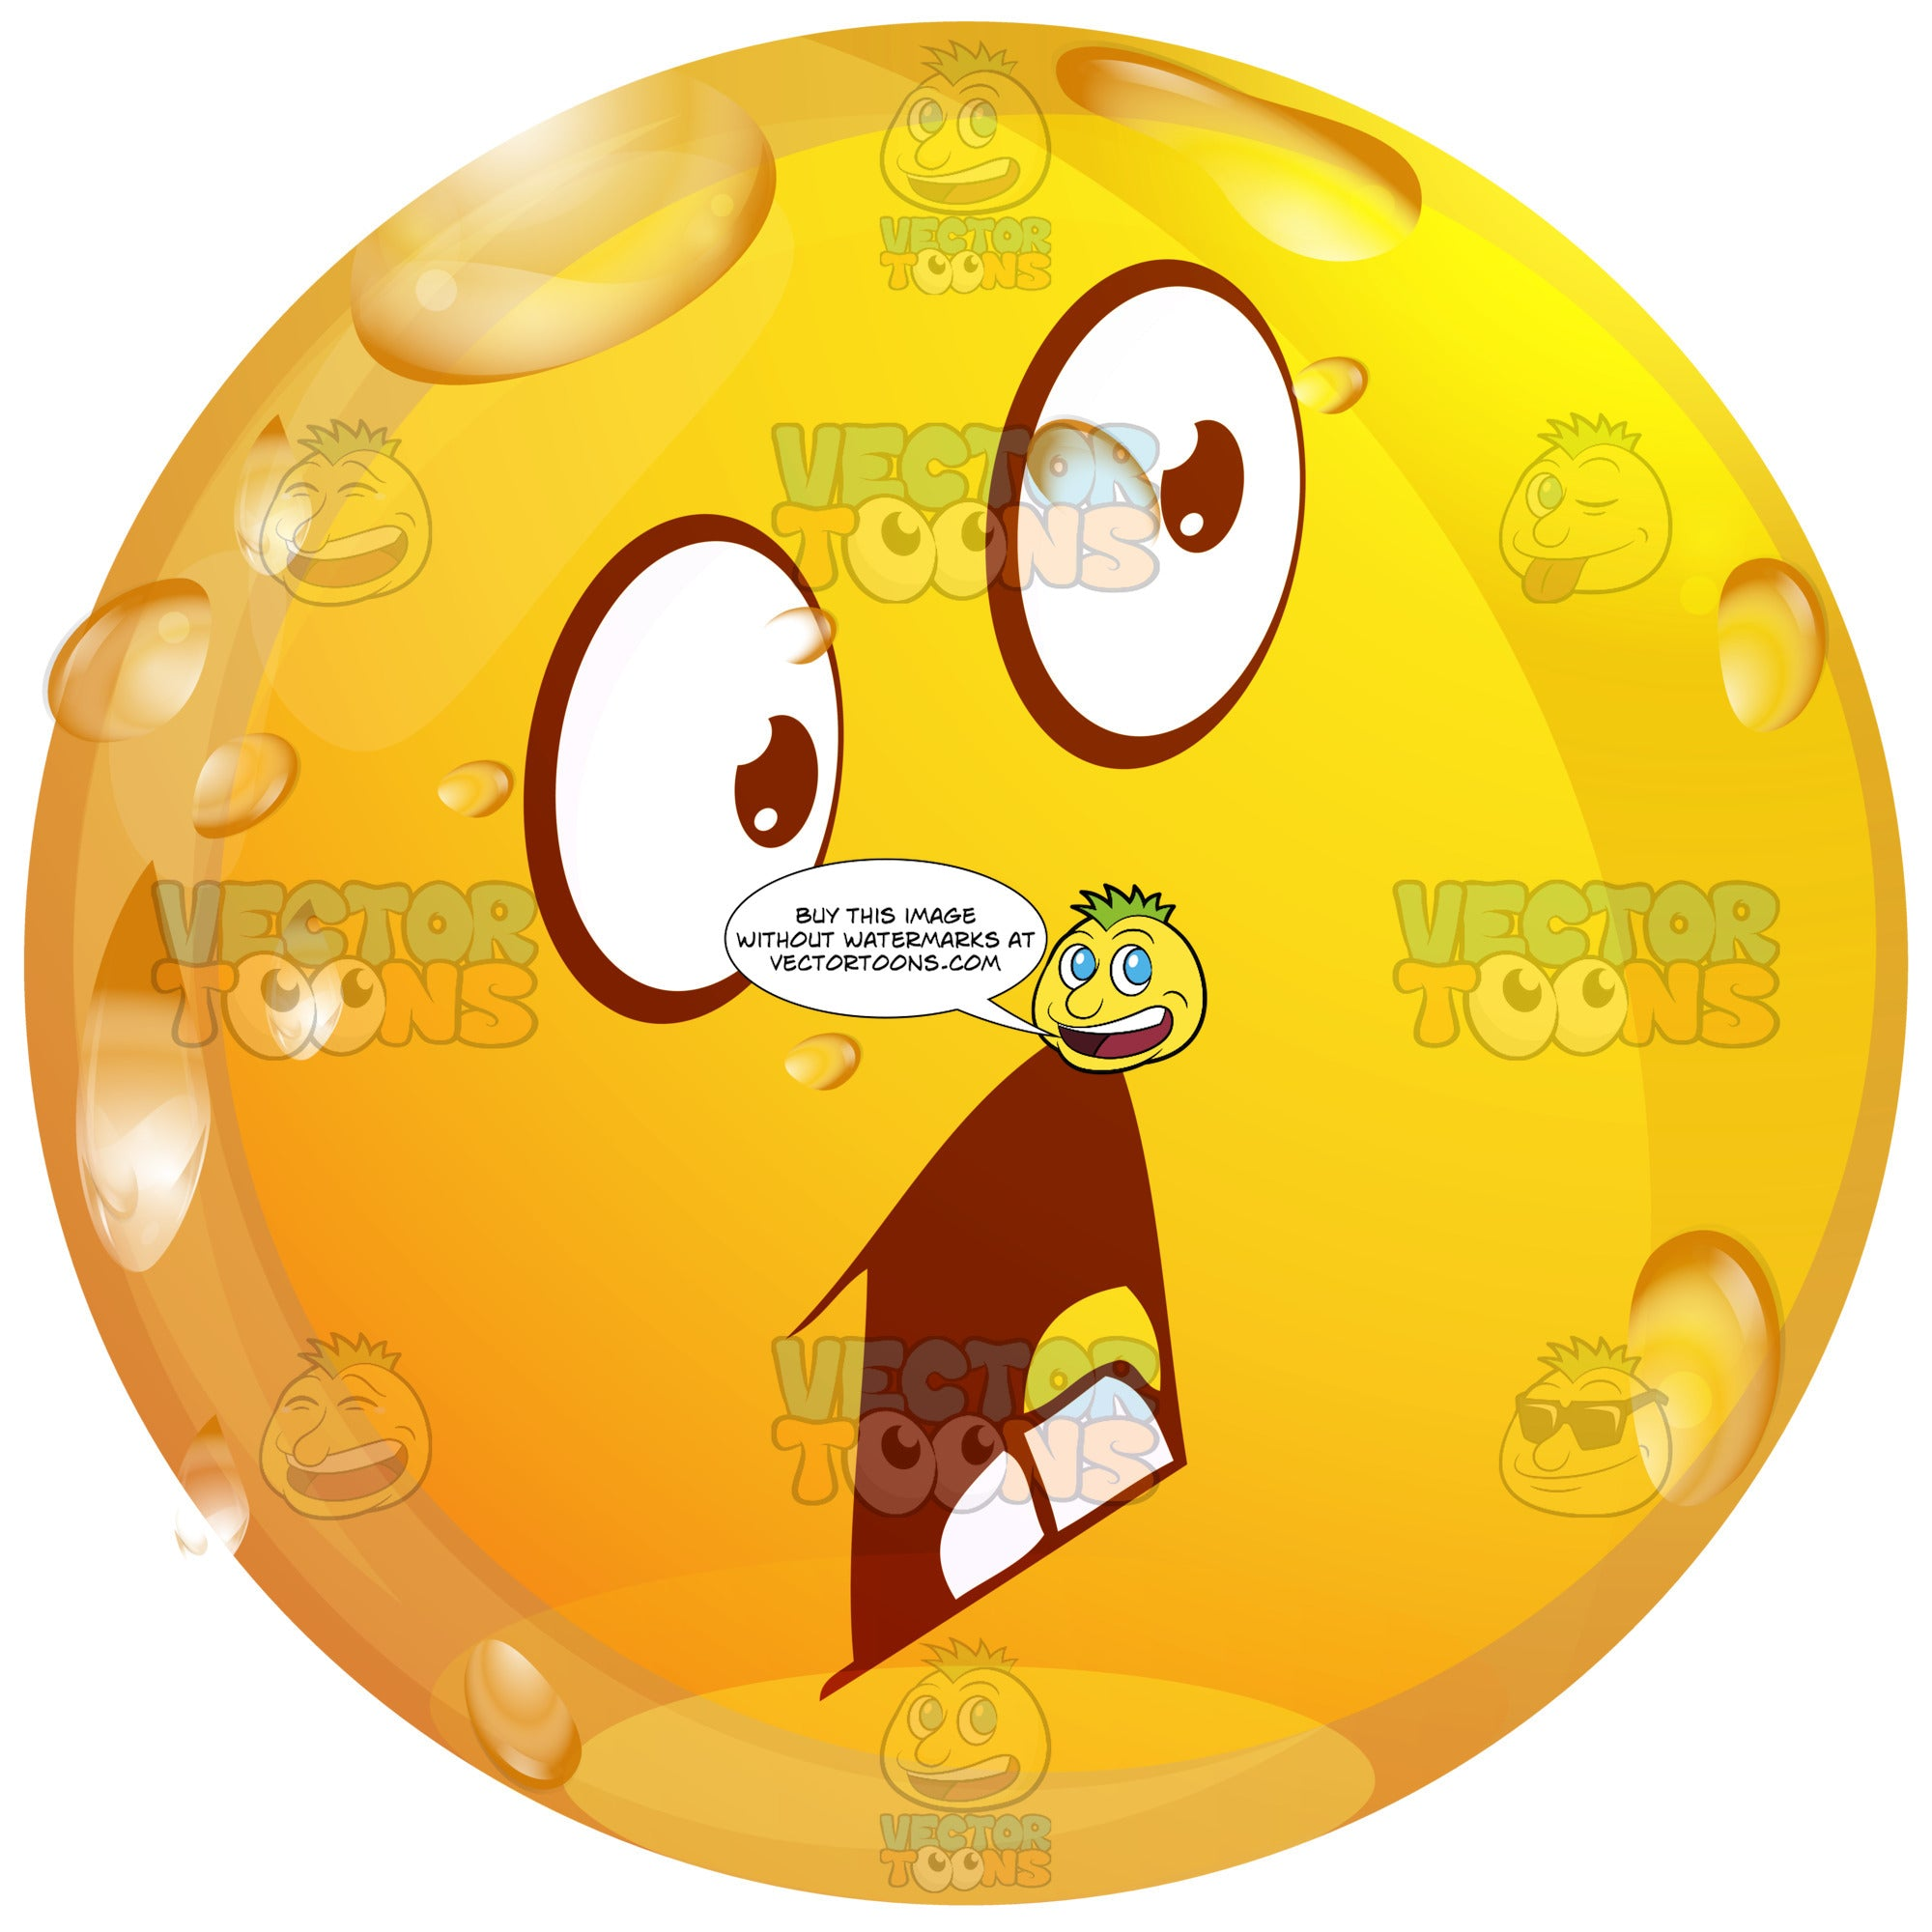 Panicked Wet Yellow Smiley Face Emoticon Open Mouth Raised